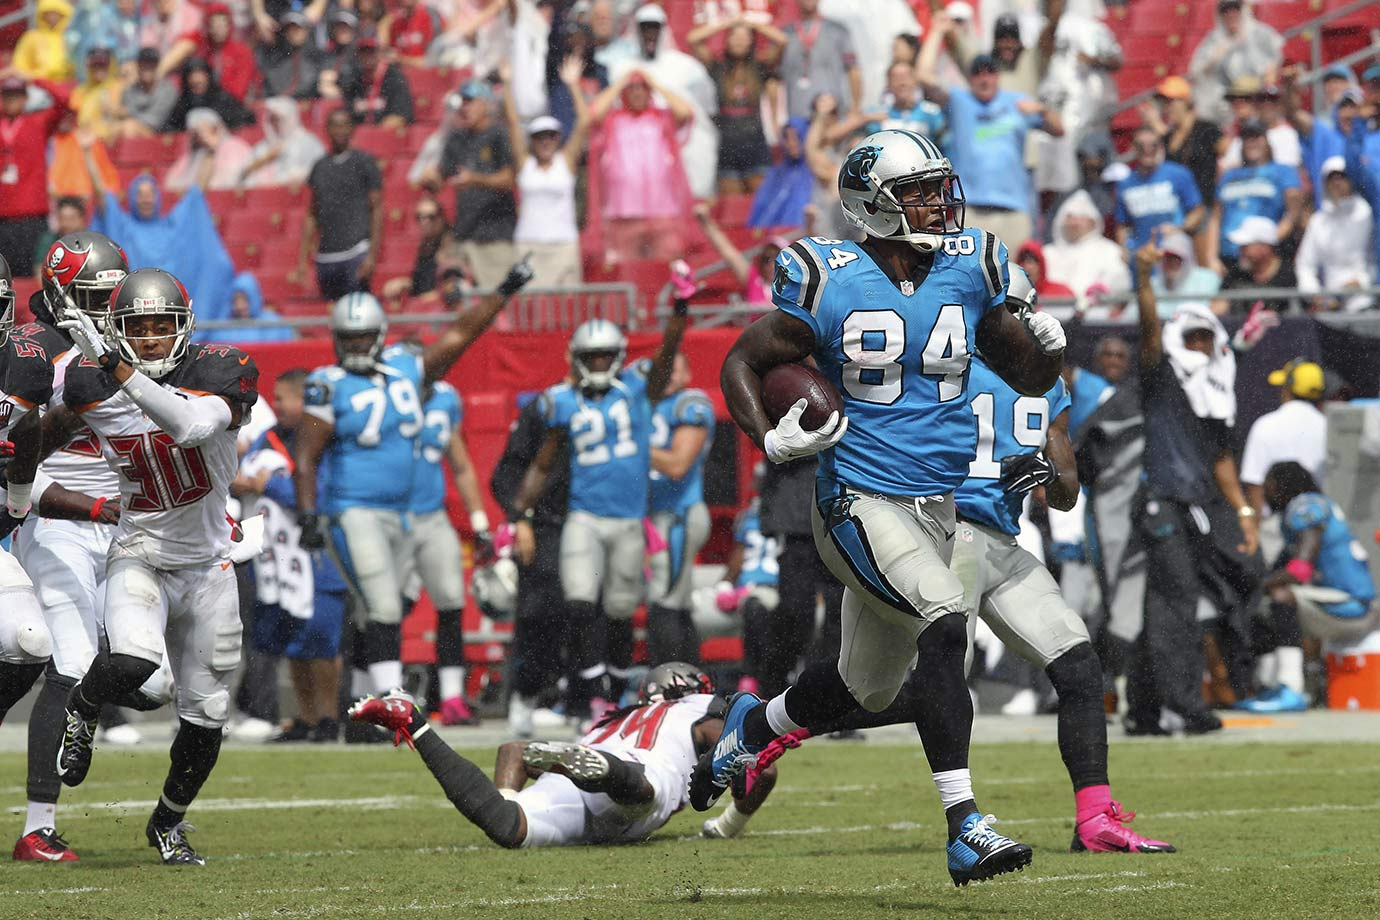 The following week, it was the Panthers who jumped out to a 10-0 lead, fueled by another Josh Norman interception returned for a touchdown, his second on the year. The Panthers never looked back, adding Ed Dickson's 57-yard fumble return for a touchdown in the third quarter, and two Ted Ginn Jr. receiving touchdowns as well in a 37-23 win over the Tampa Bay Buccaneers. Carolina went into its bye week with a 4-0 record and momentum.